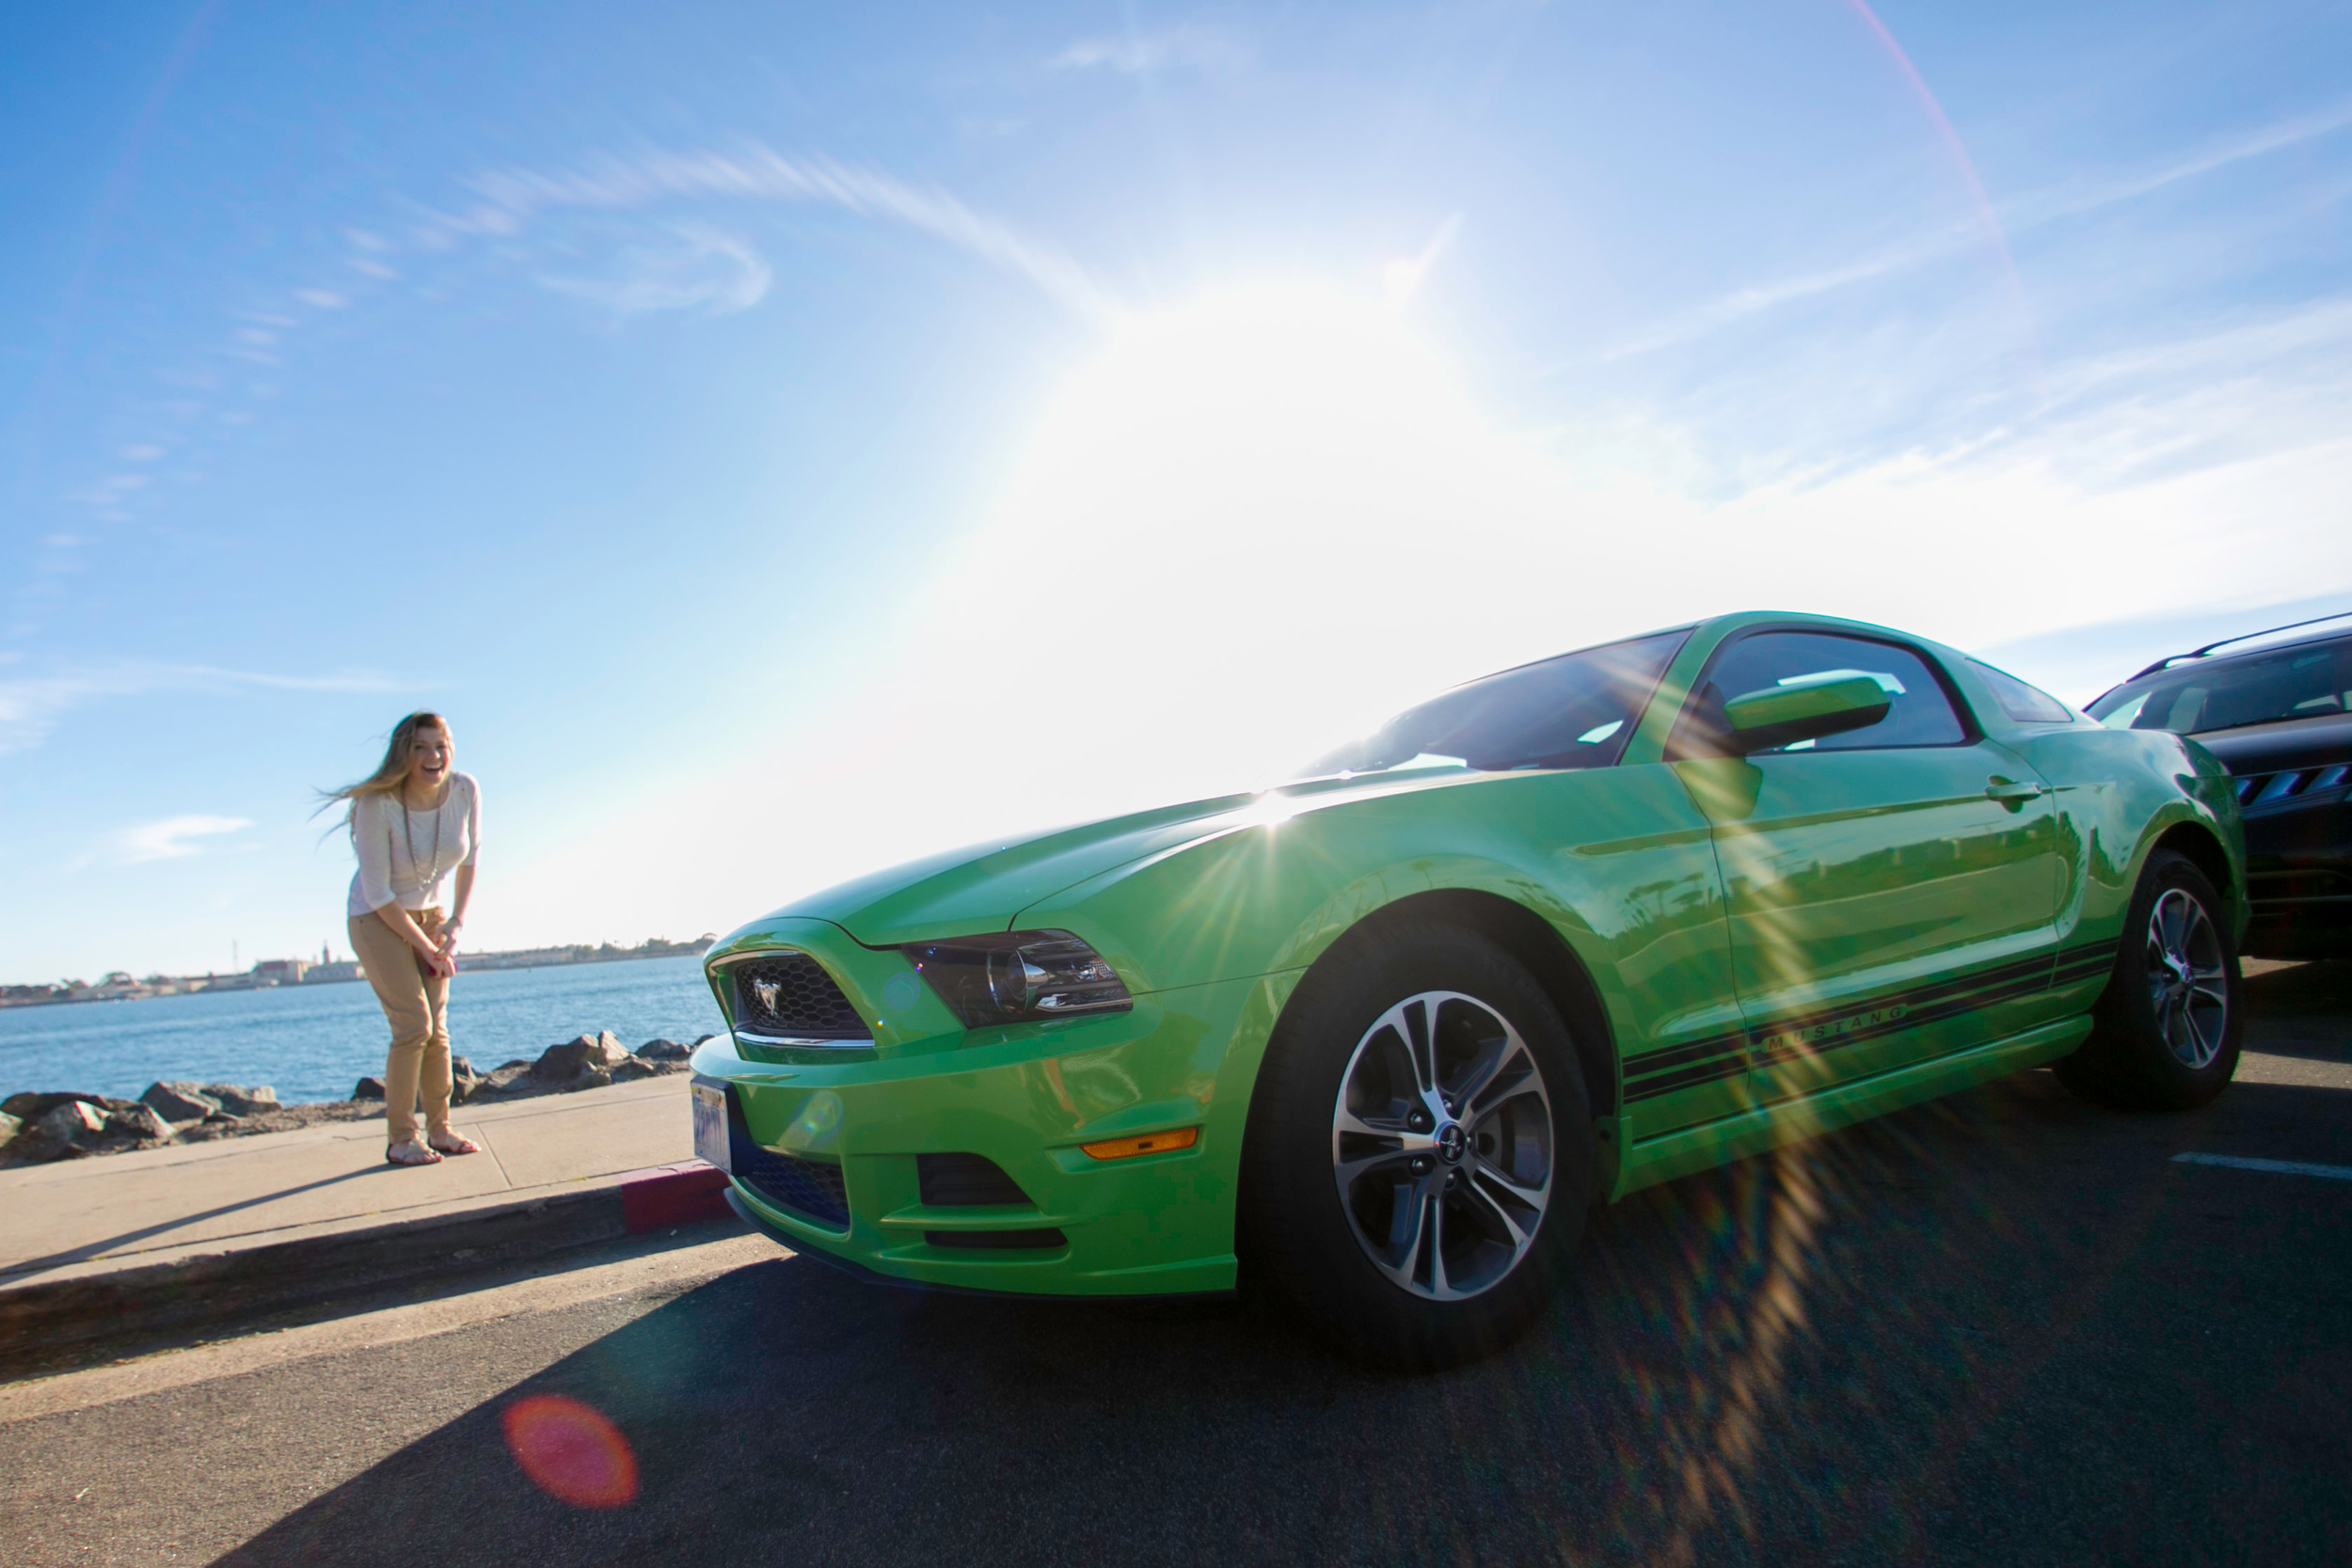 """We ended up with a lime green mustang for the trip – we named her """"green pony"""" and was like a 3rd member of our crew"""